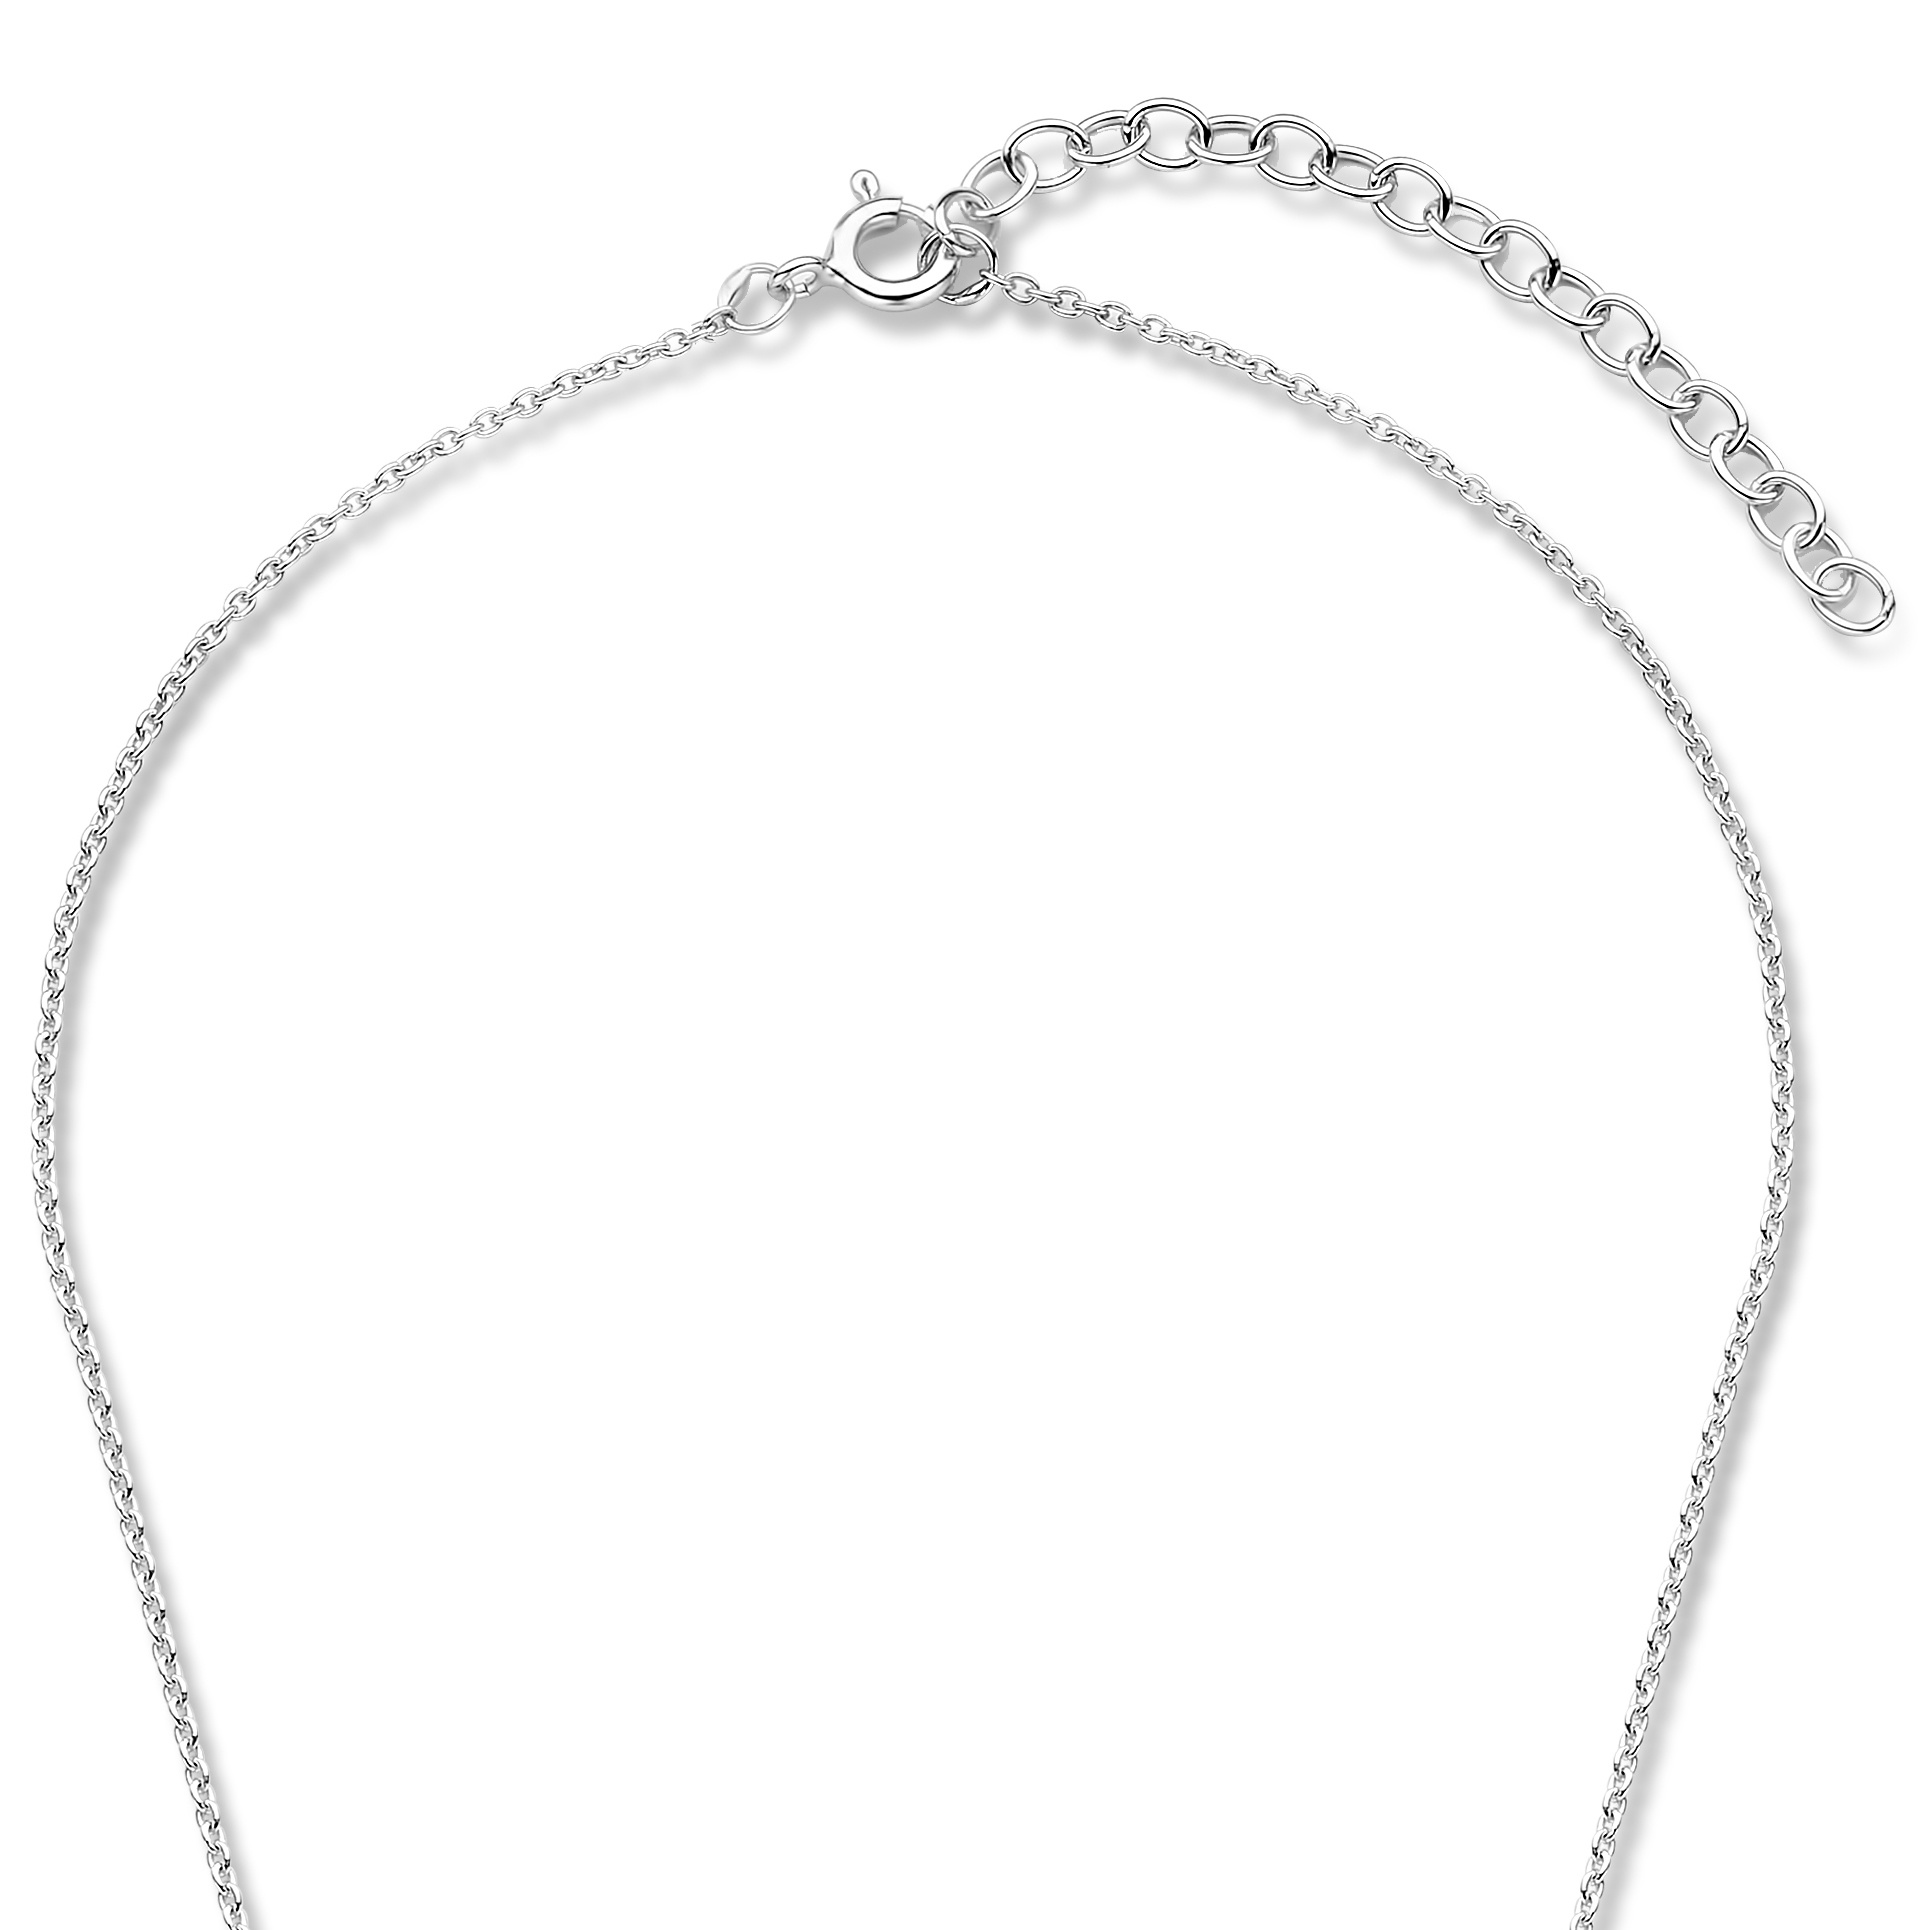 Violet Hamden Luna 925 sterling silver necklace with coin